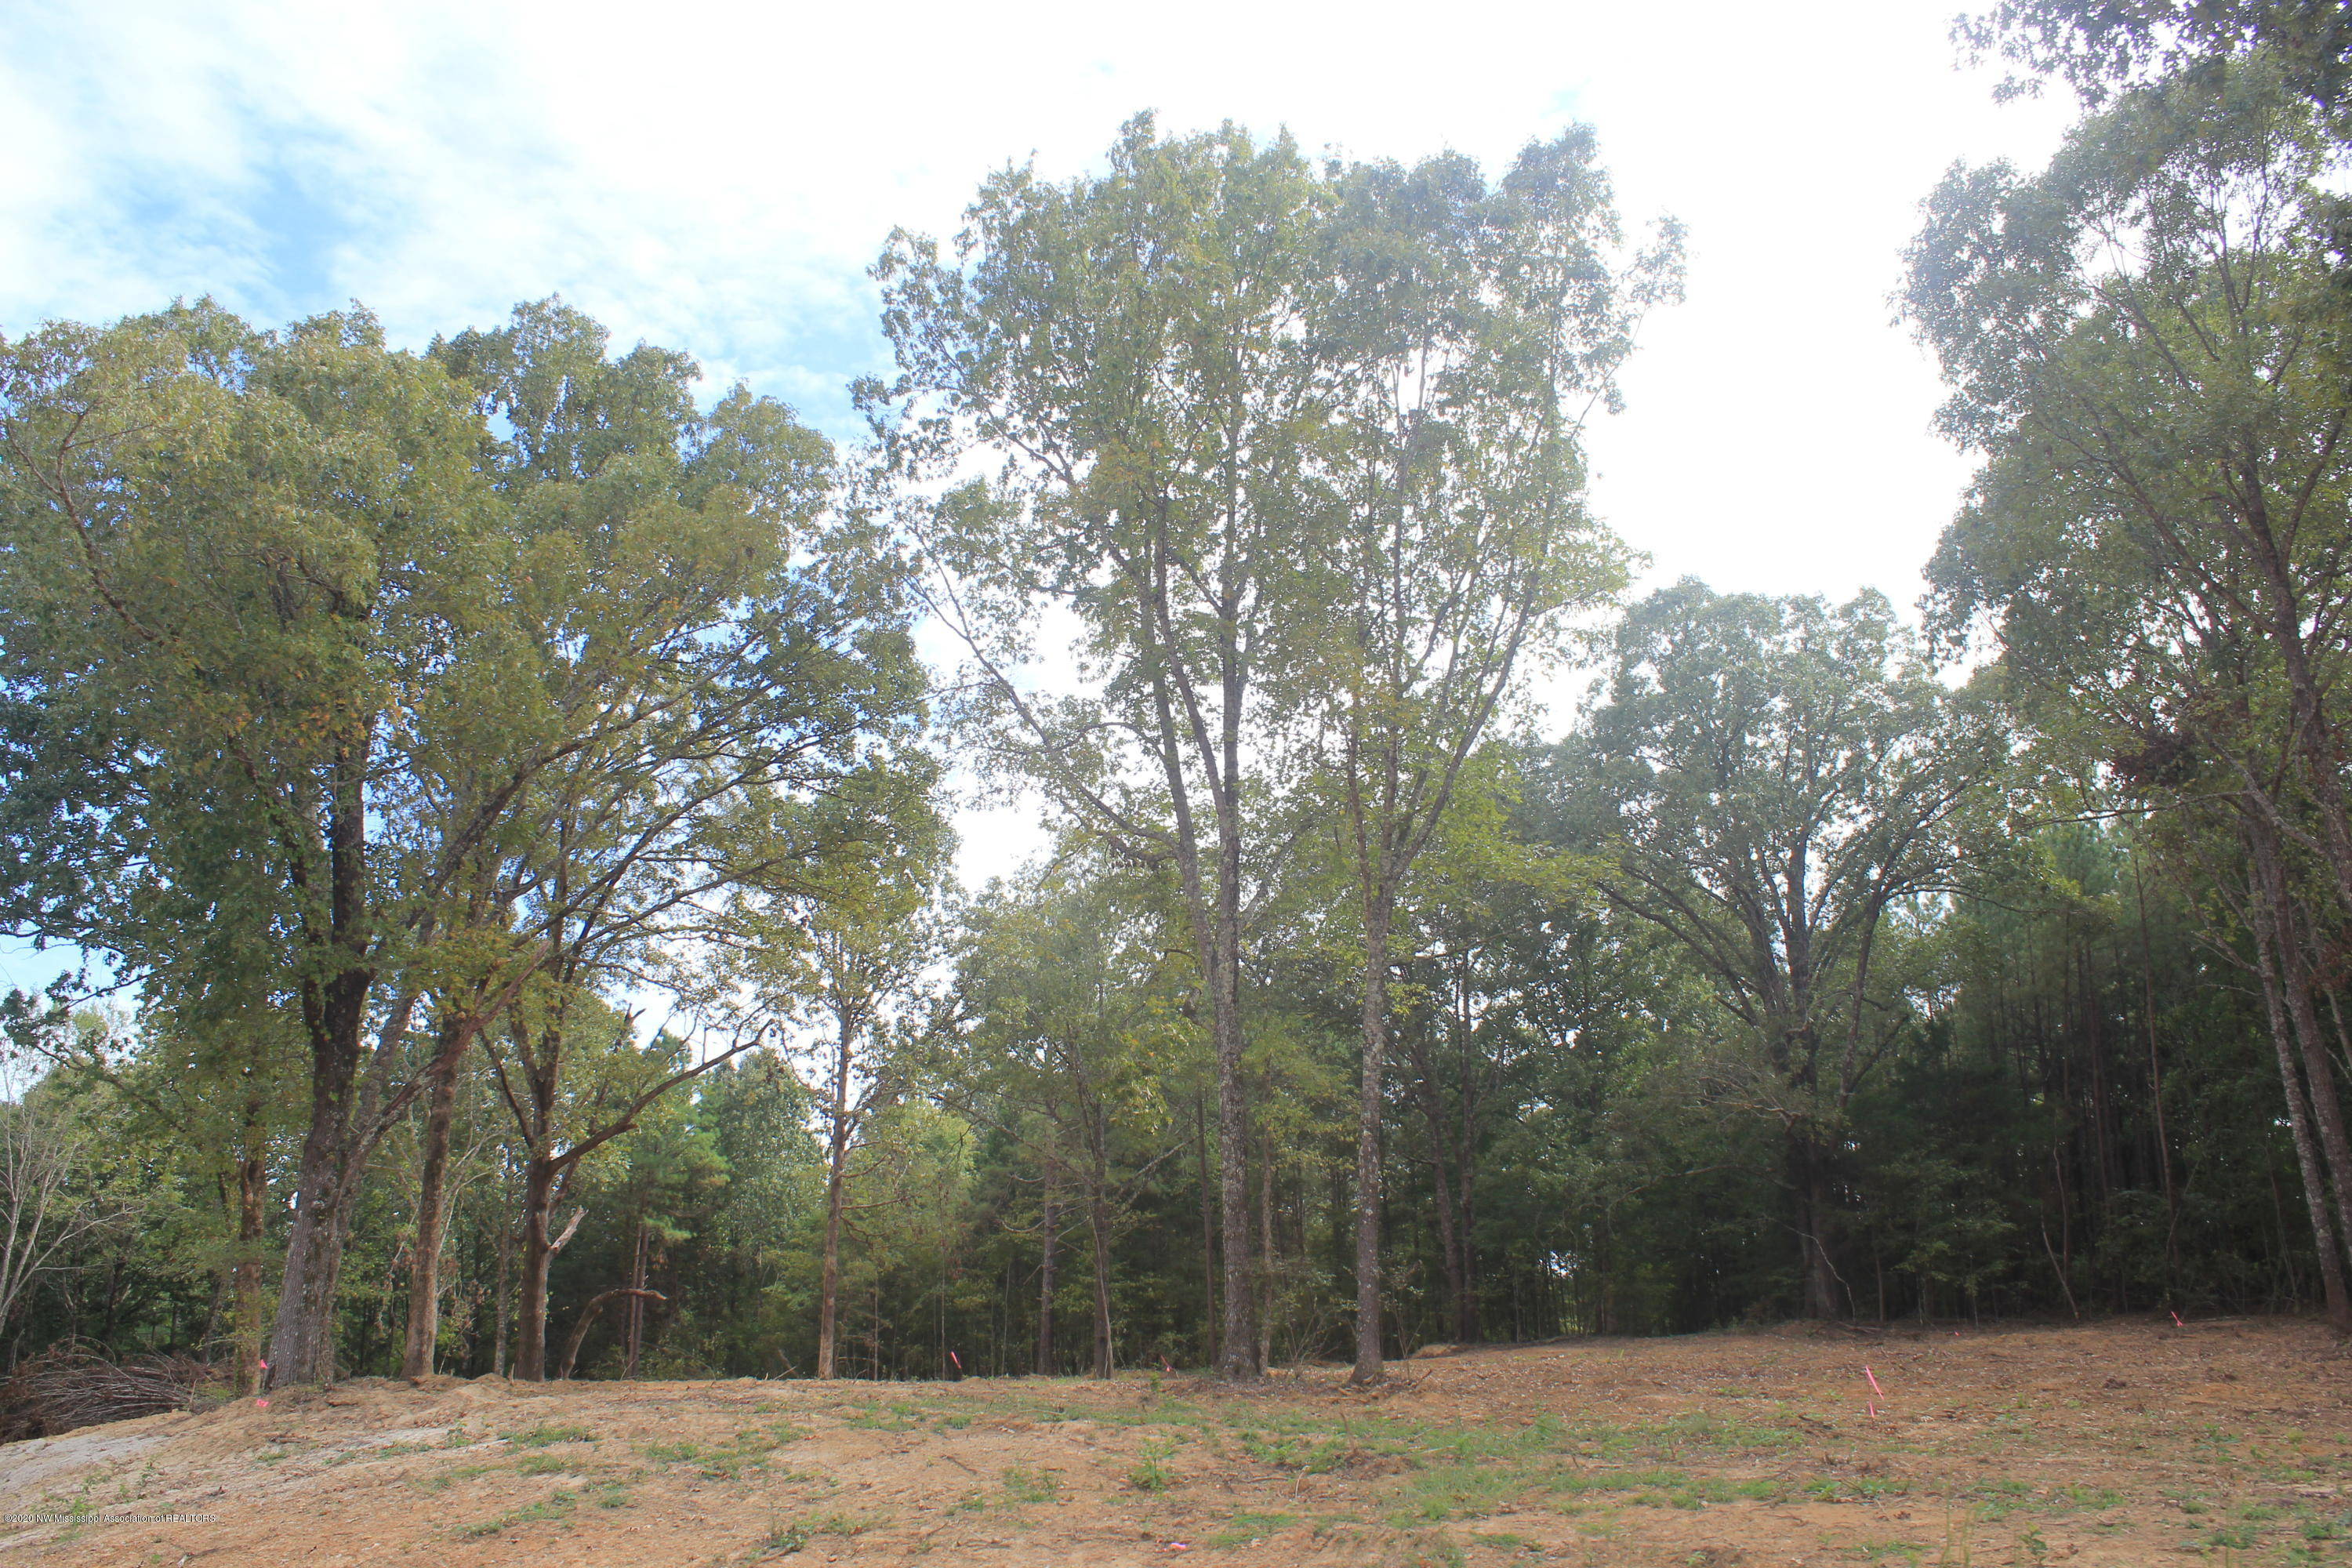 66 Hayward Drive, Marshall, Mississippi 38611, ,Land,For Sale,Hayward,331670